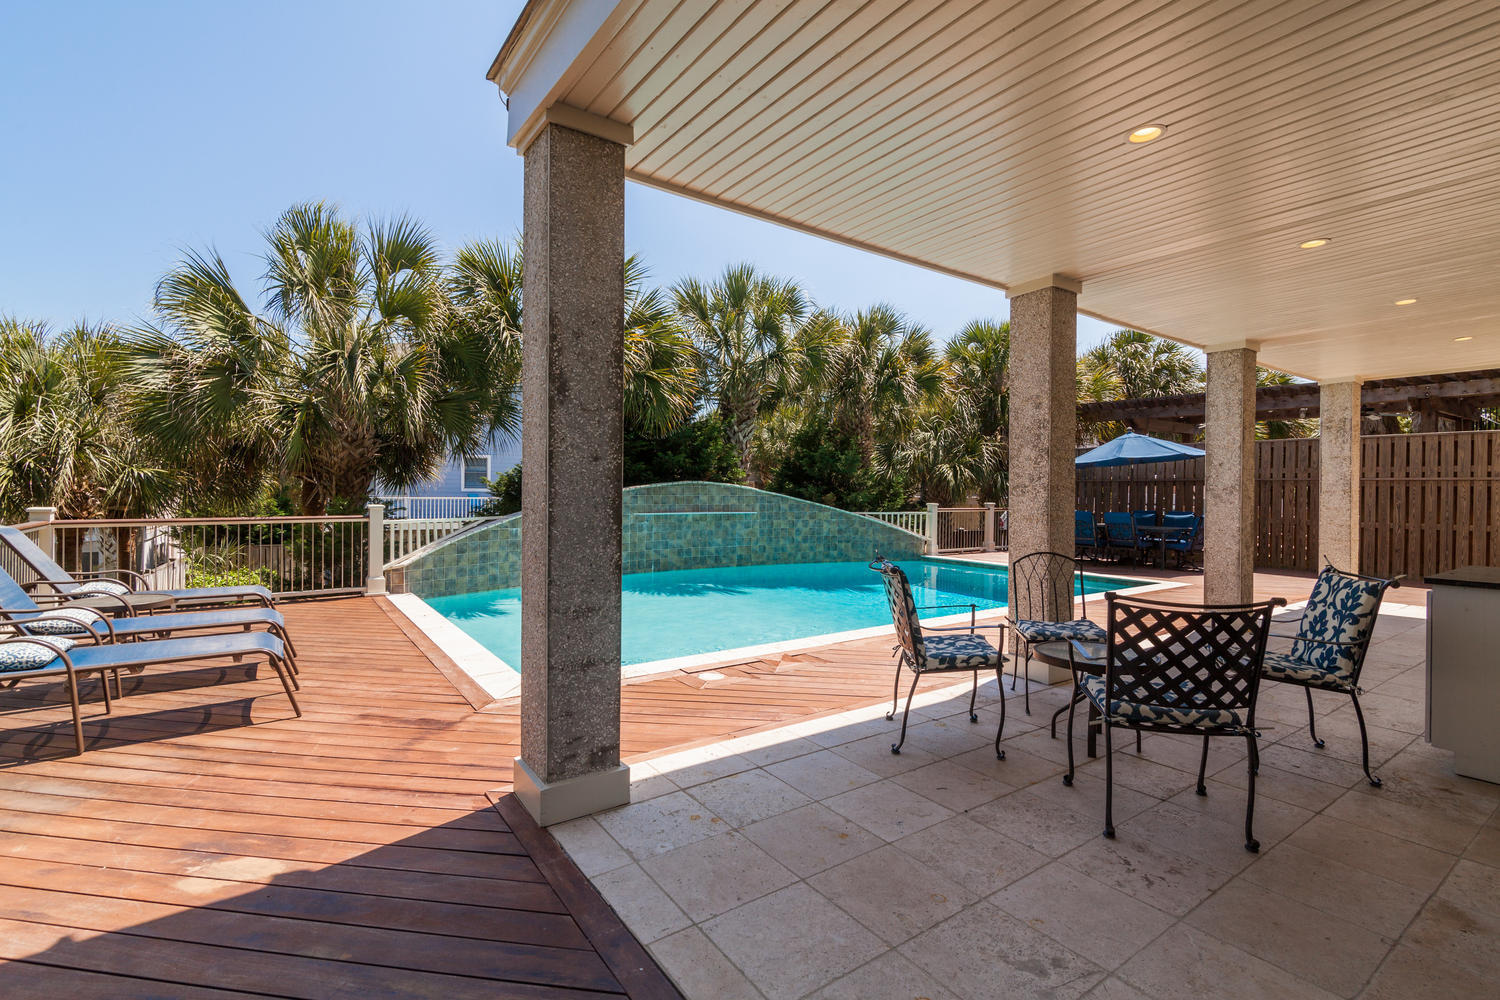 Photo of 302 Carolina Blvd, Isle of Palms, SC 29451